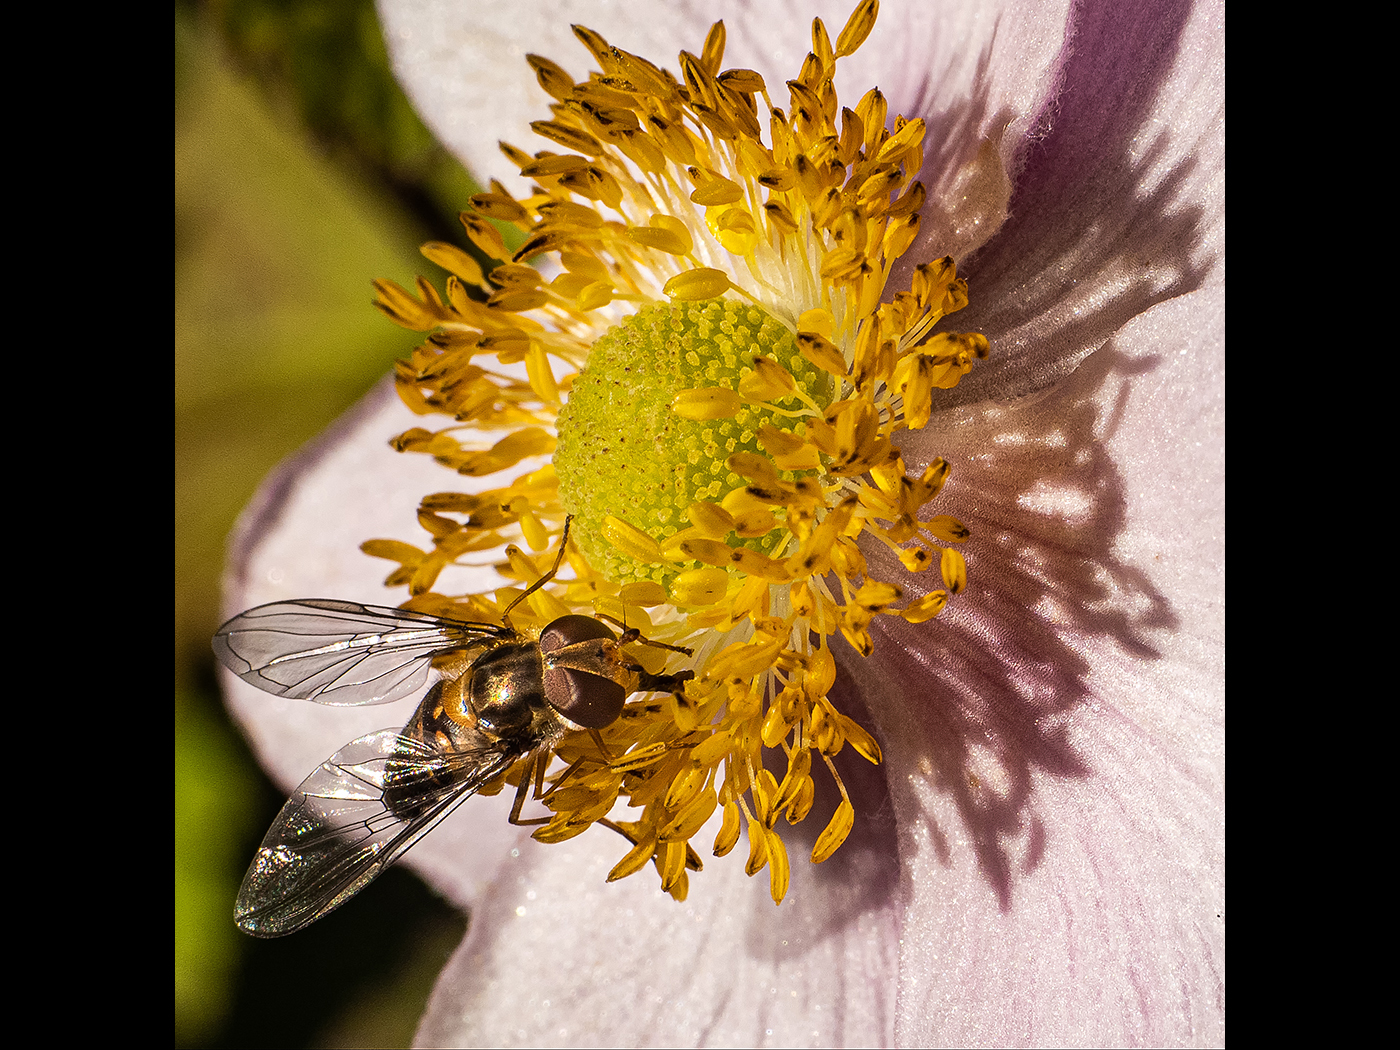 feeding-hover-fly-by-roy